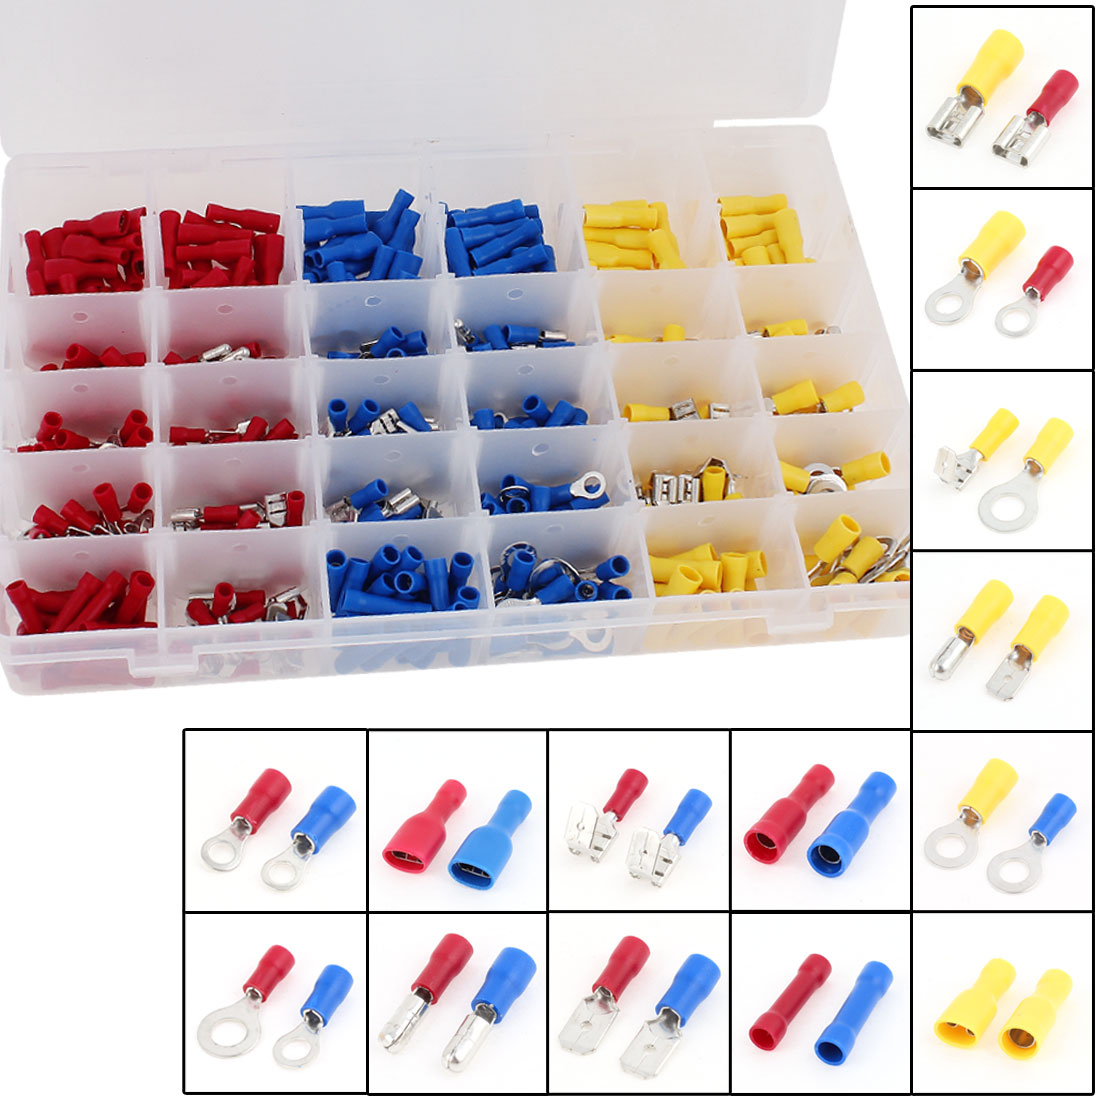 480 Pcs Wire Connector Insulated Crimp Terminal Assortment Kit